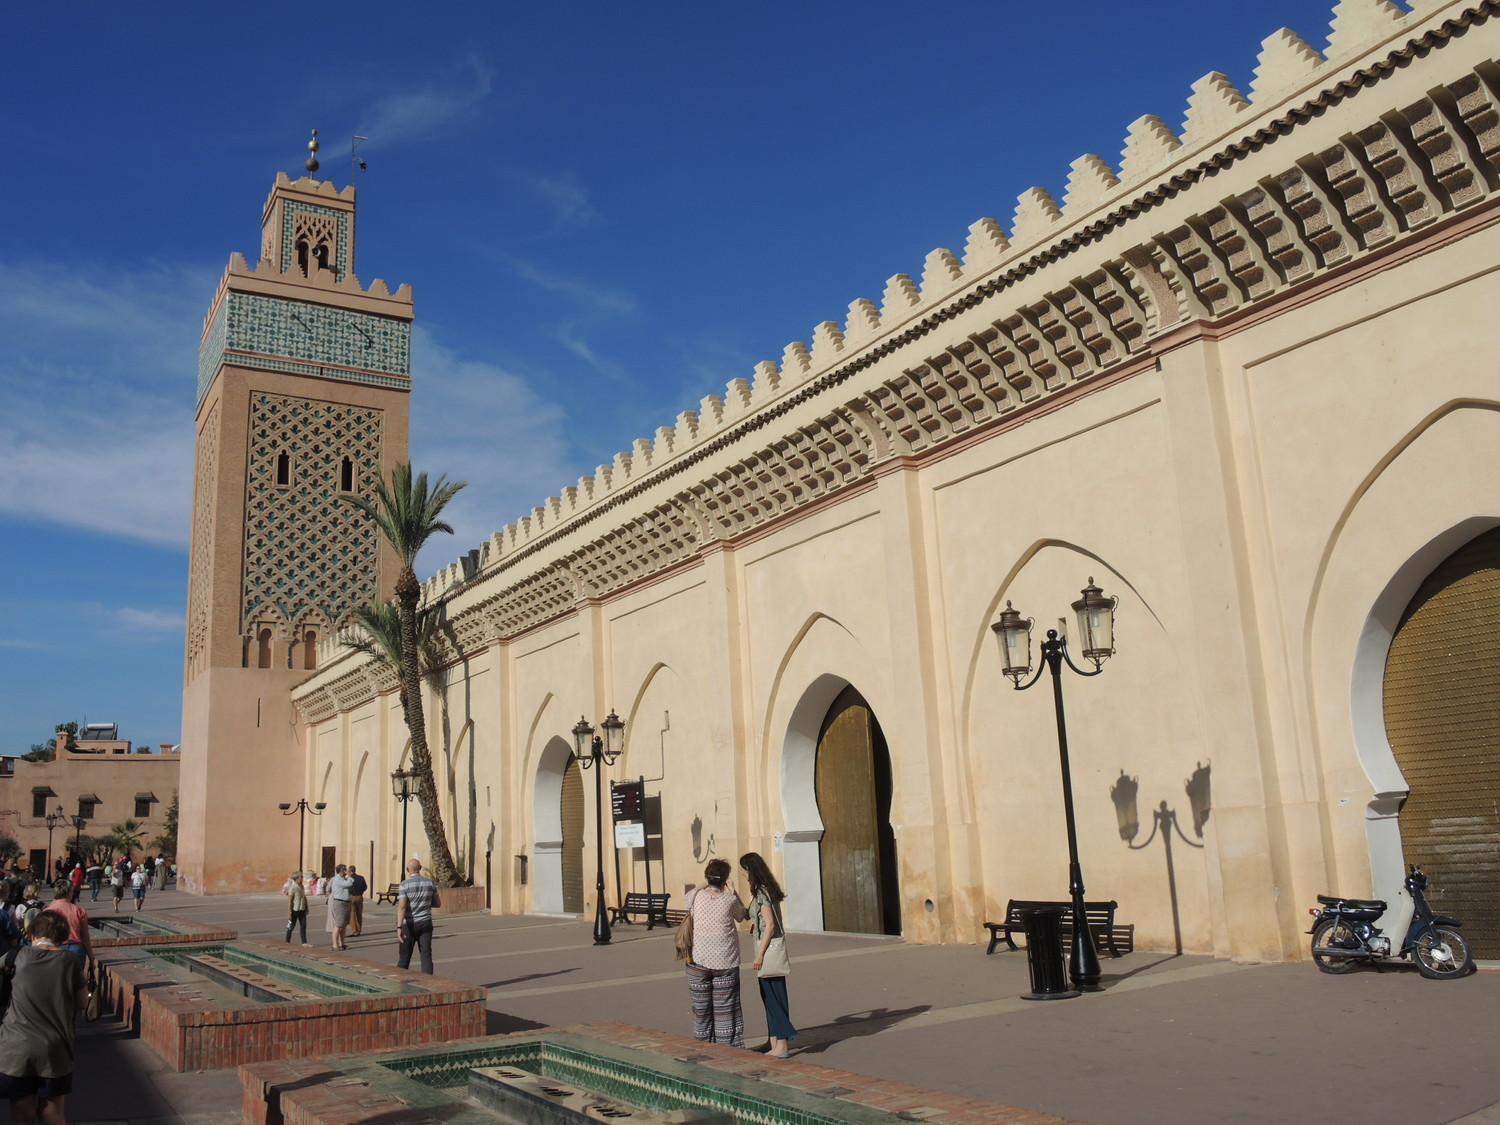 Saadian mausoleum in Marrakech